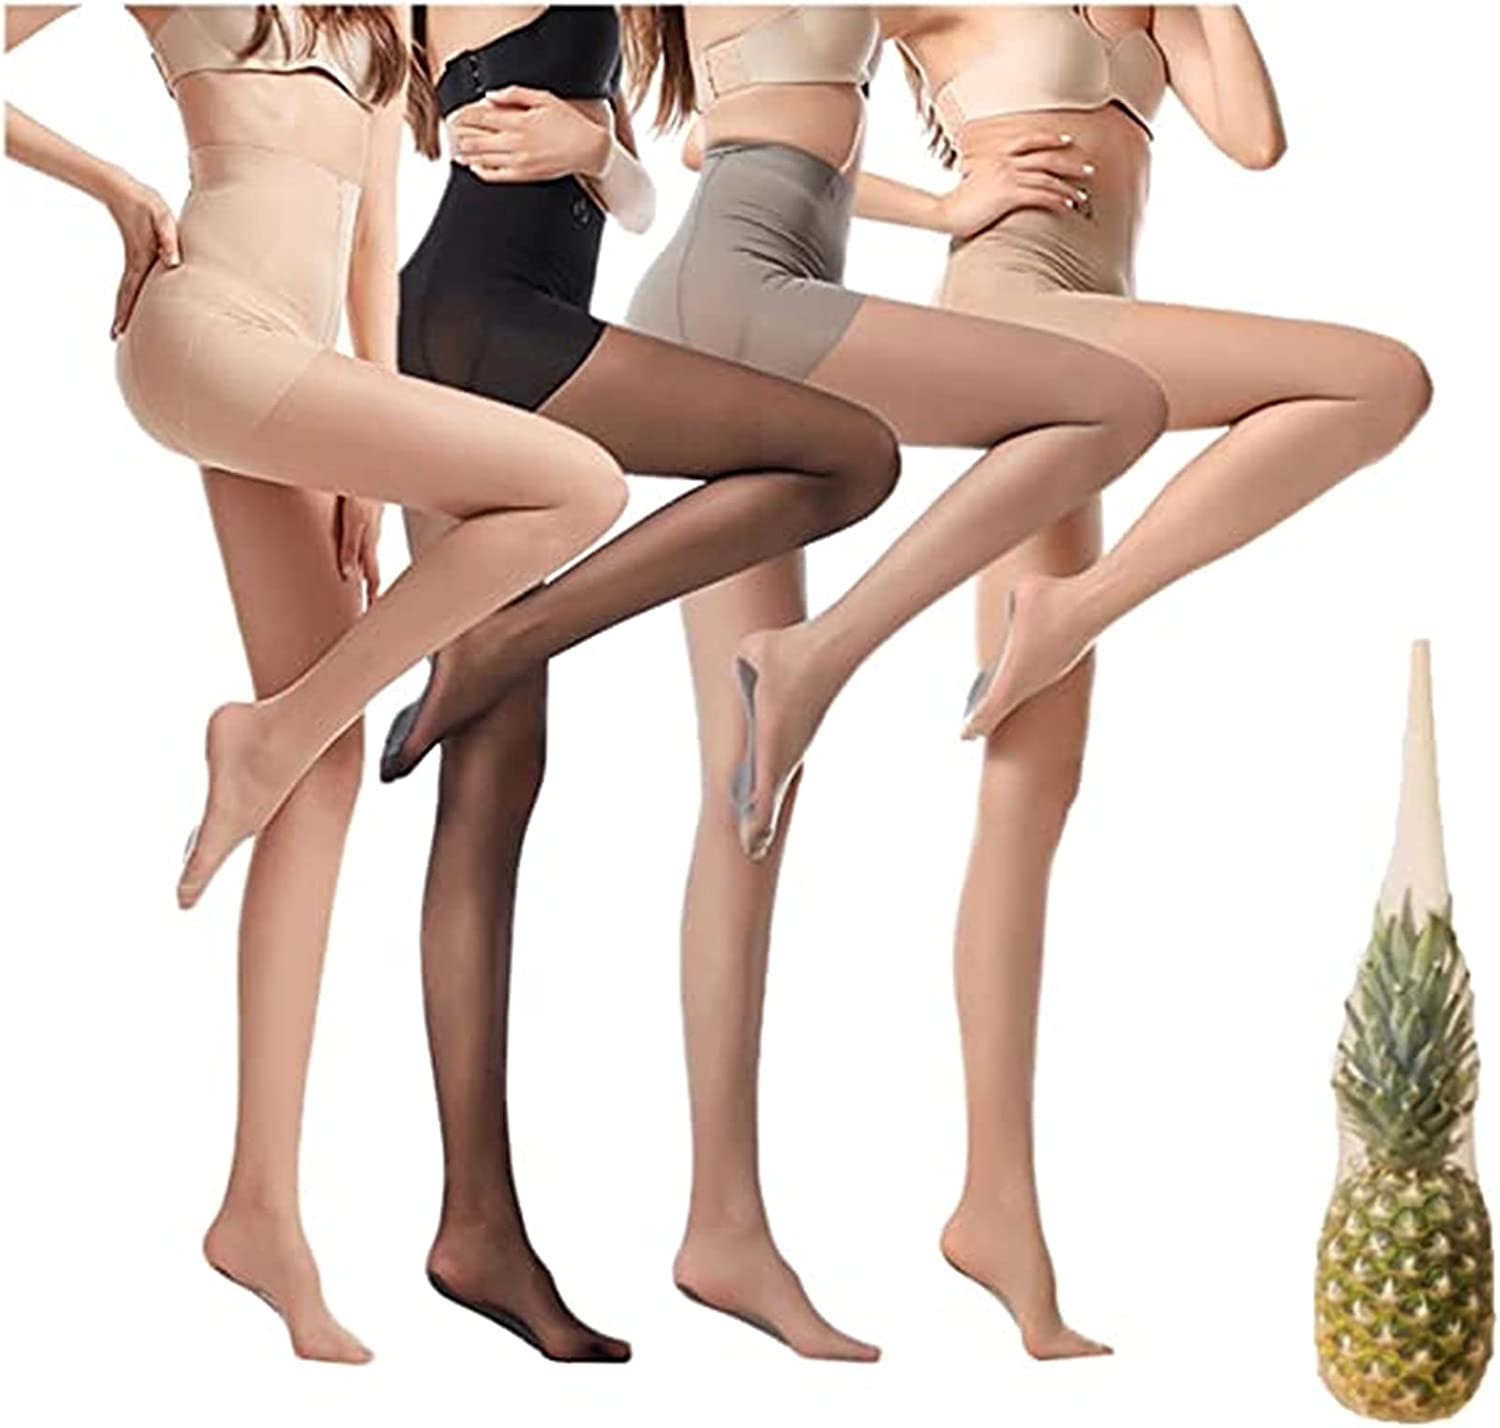 MTDBAOD Universal Stretch Anti-Scratch Stockings,Sexy Sheer Tights Silk Stockings,Top Pantyhose with Reinforced Toes,Ultra Invisible High Waist Pantyhose for Women